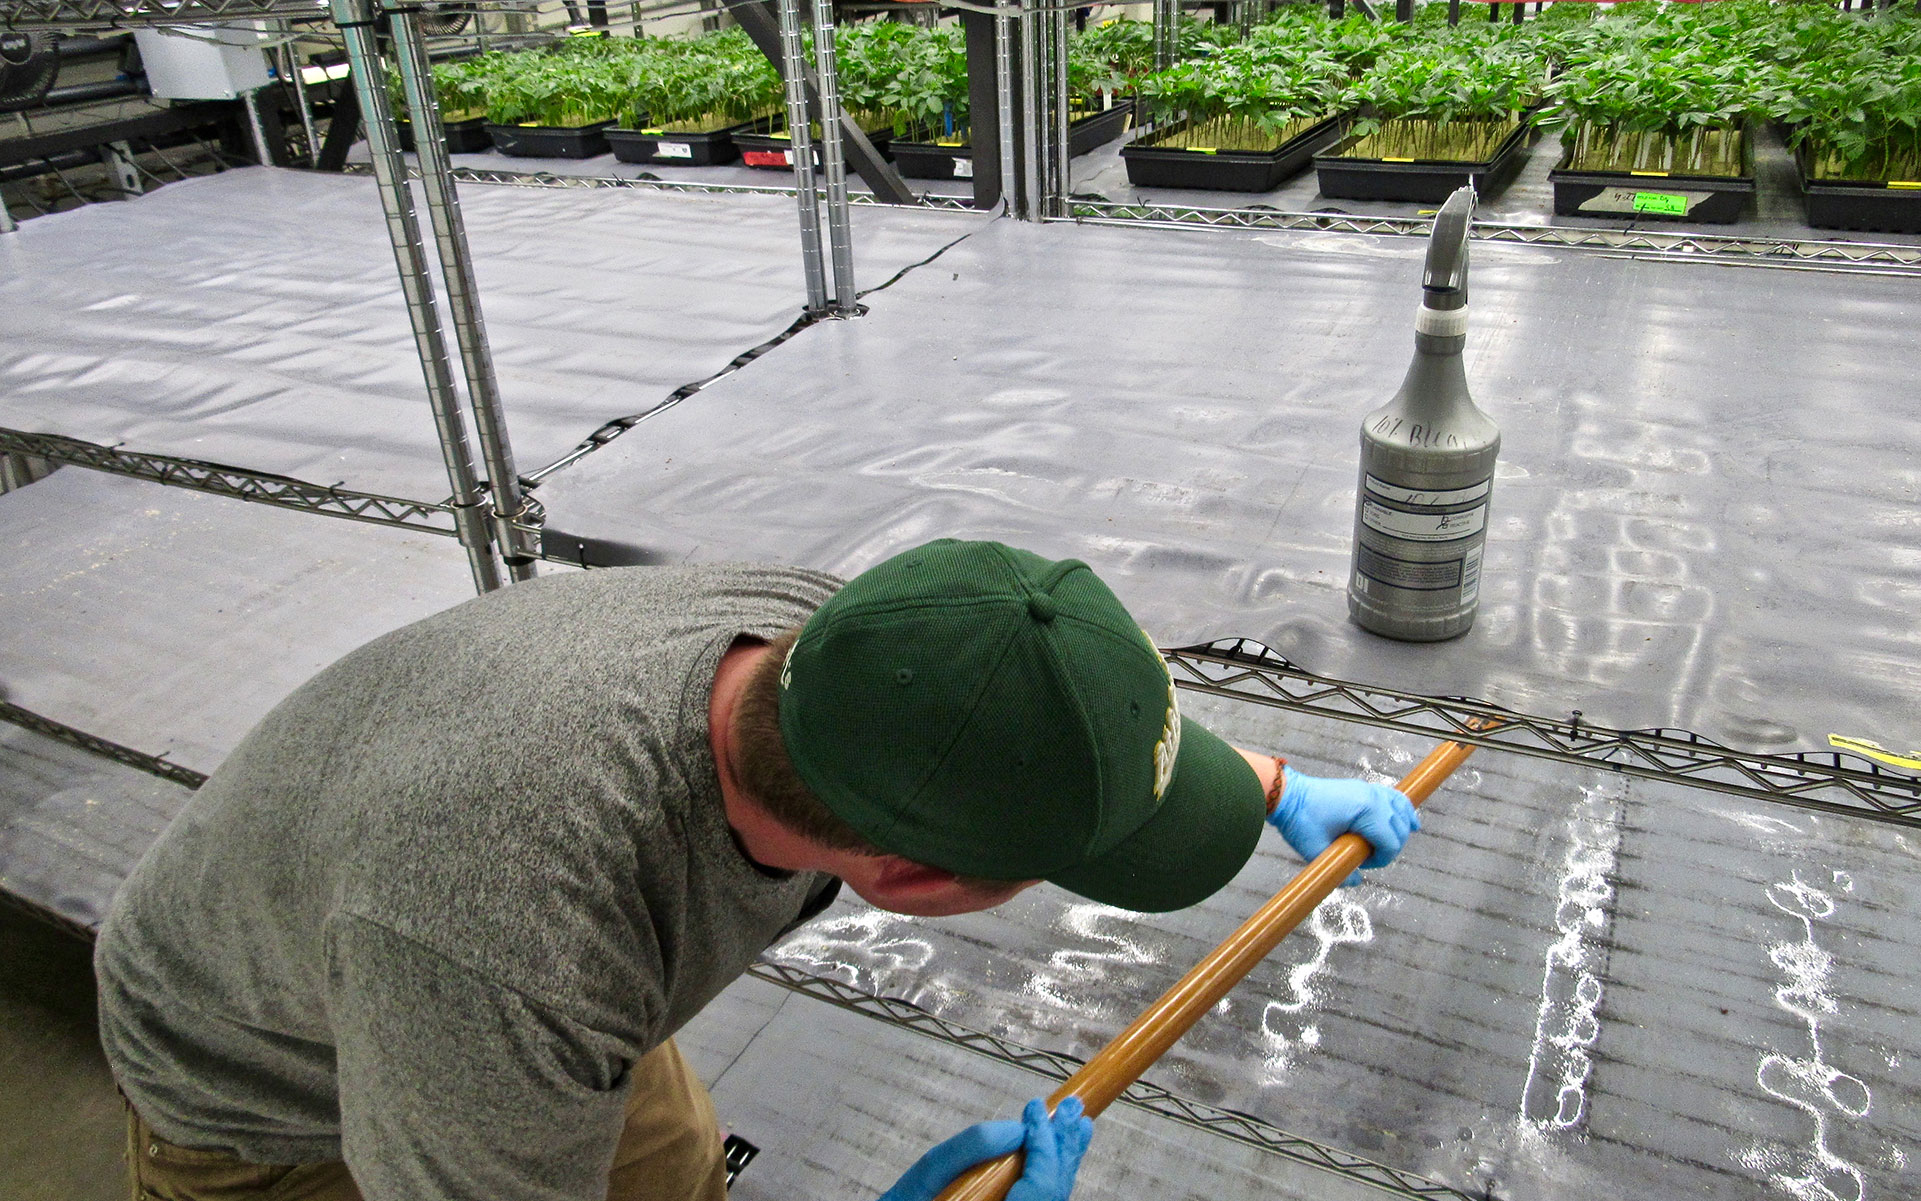 A worker wipes down tray racks with a bleach solution to kill pathogens, part of a patent-pending cleaning protocol. (David Downs for Leafly)